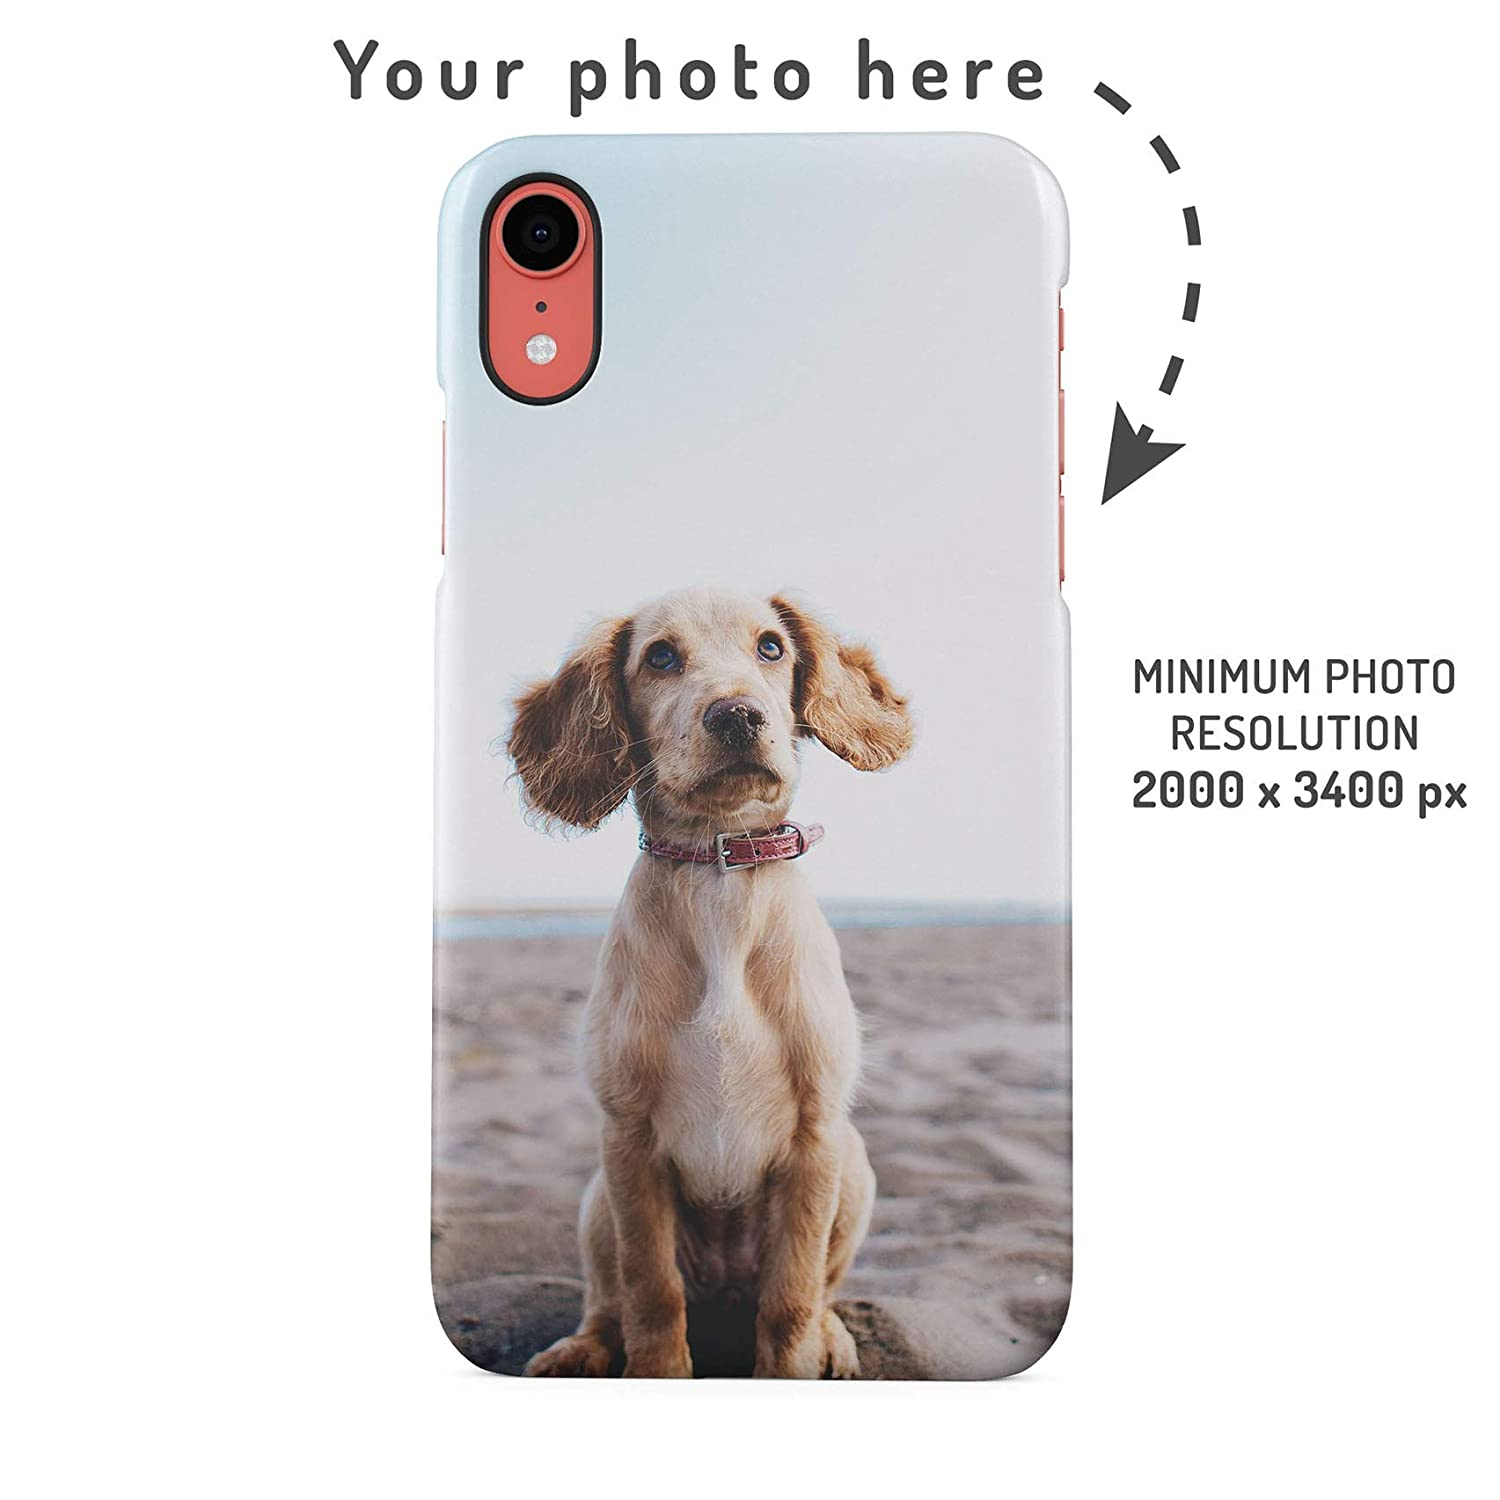 6d8413d1 Amazon.com: Personalised Custom Photo Create Your Own Image Phone Case  Design Make Your Own Print Protective Hard Plastic Case Cover for iPhone  XR: Cell ...